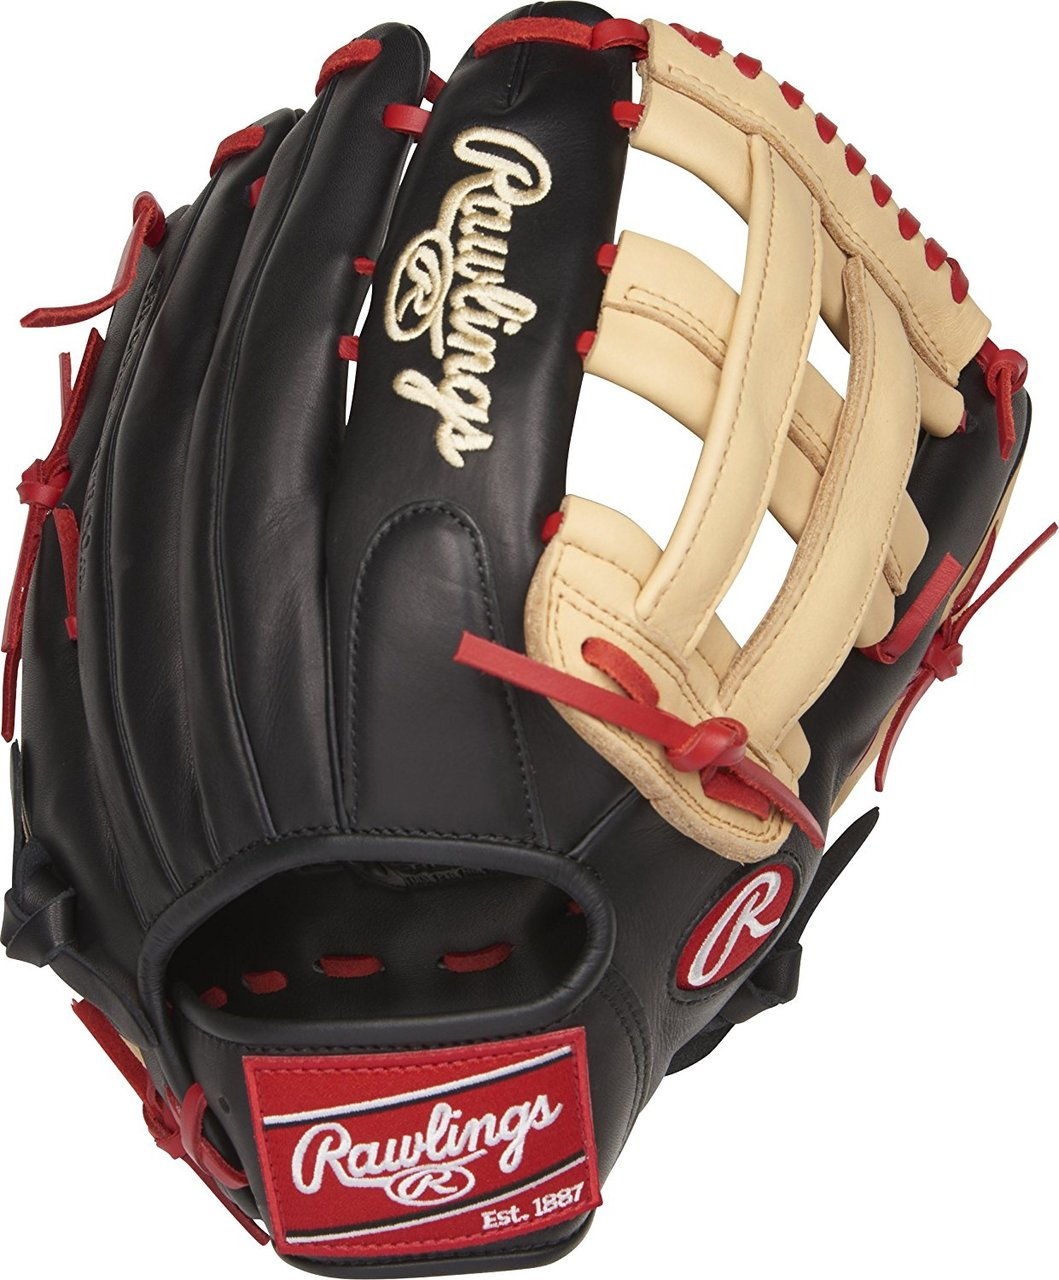 rawlings-gamer-xle-gxle3029-6bgs-baseball-glove-12-75-right-hand-throw GXLE3029-6BGS-RightHandThrow  083321369025 Add some color to your game with a Gamer™ XLE glove!